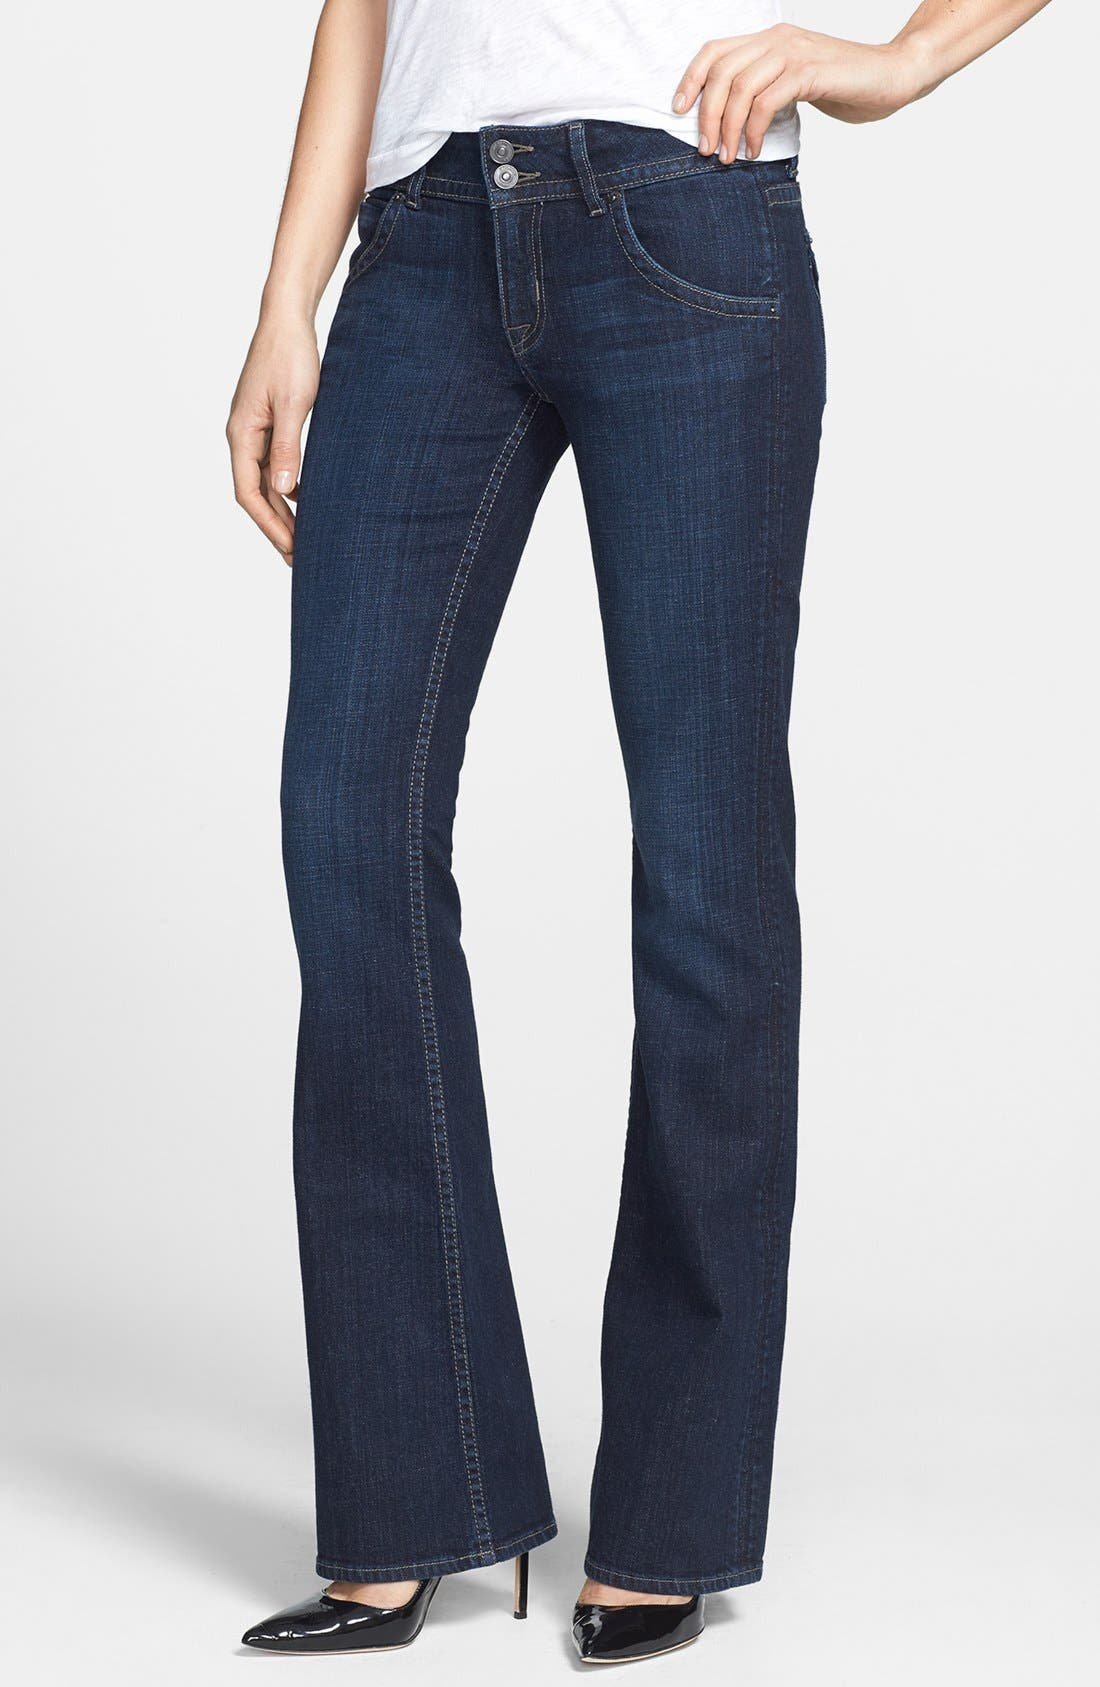 Alternate Image 1 Selected - Hudson Jeans 'Signature' Bootcut Jeans (Charisma)